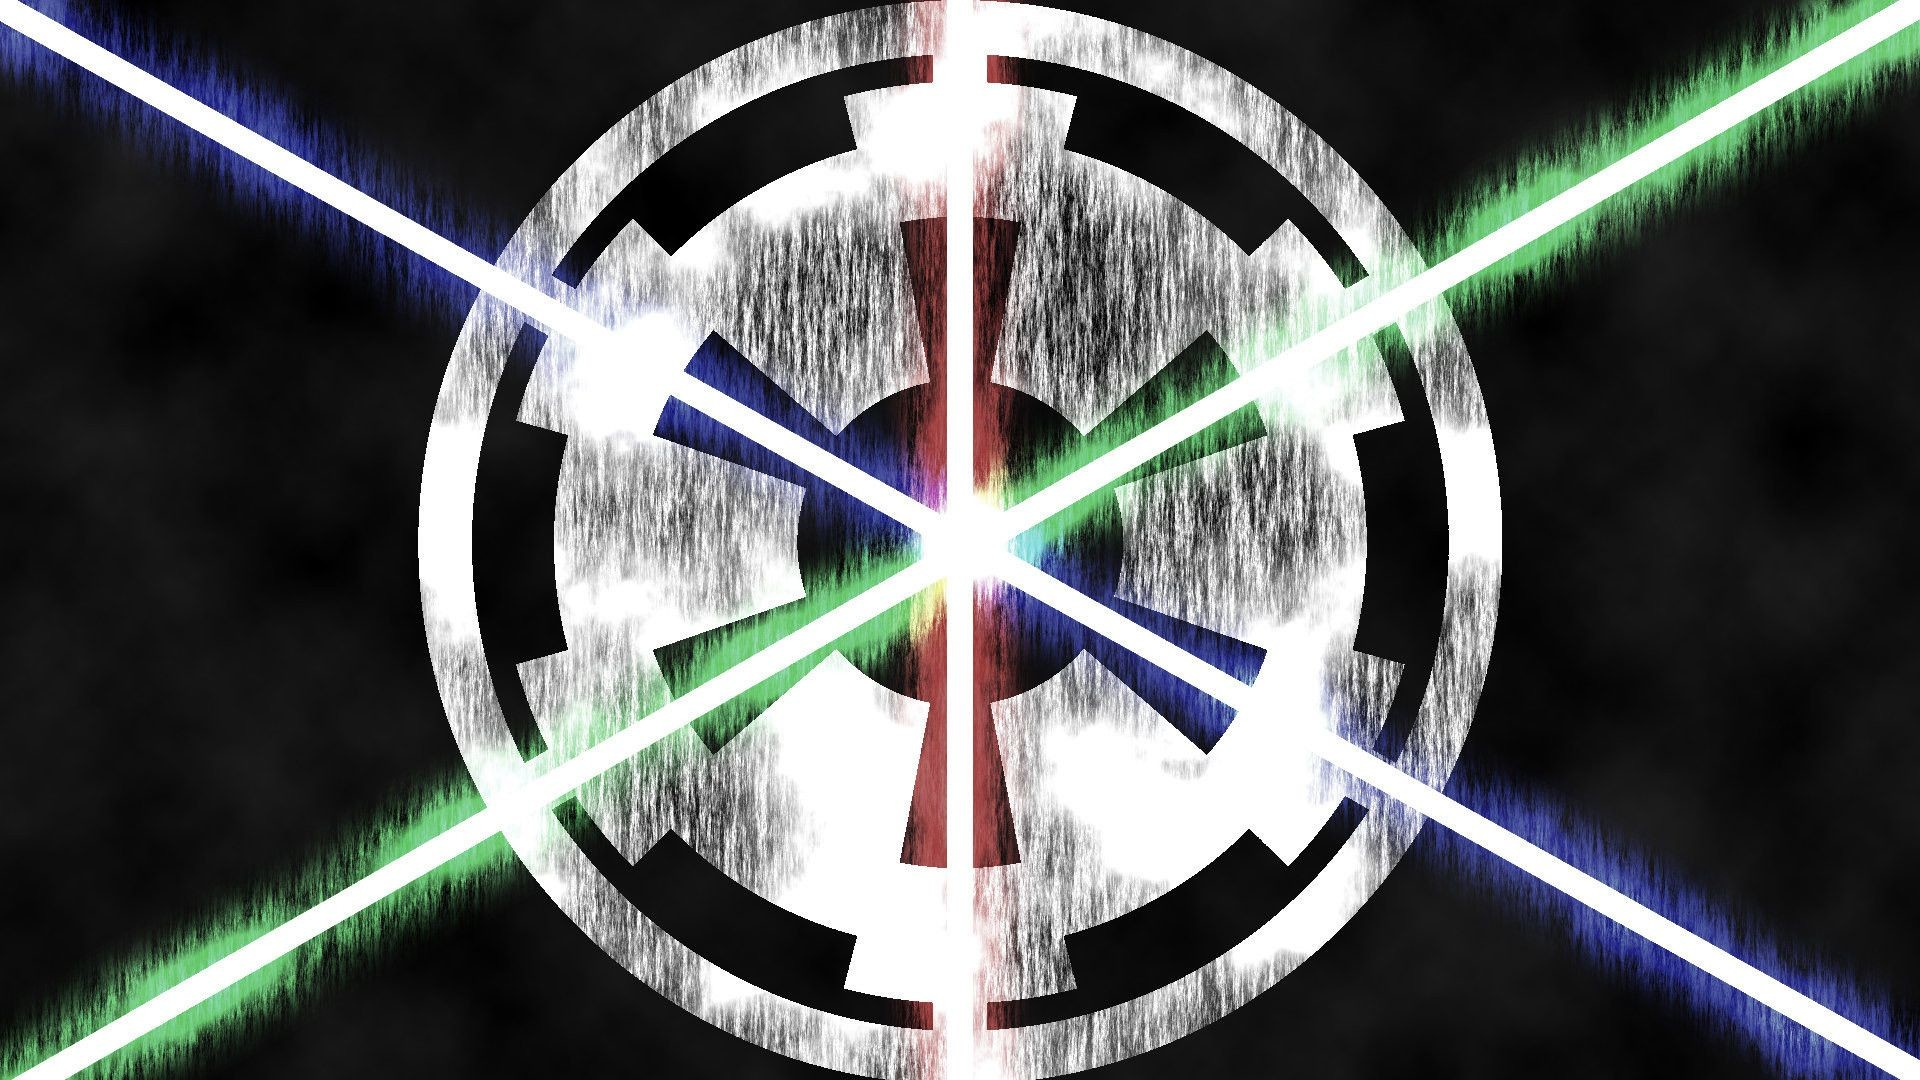 1920x1080 Star Wars Empire Picture For Desktop Wallpaper 1920 x 1080 px 623.08 KB  empire lightsaber jedi